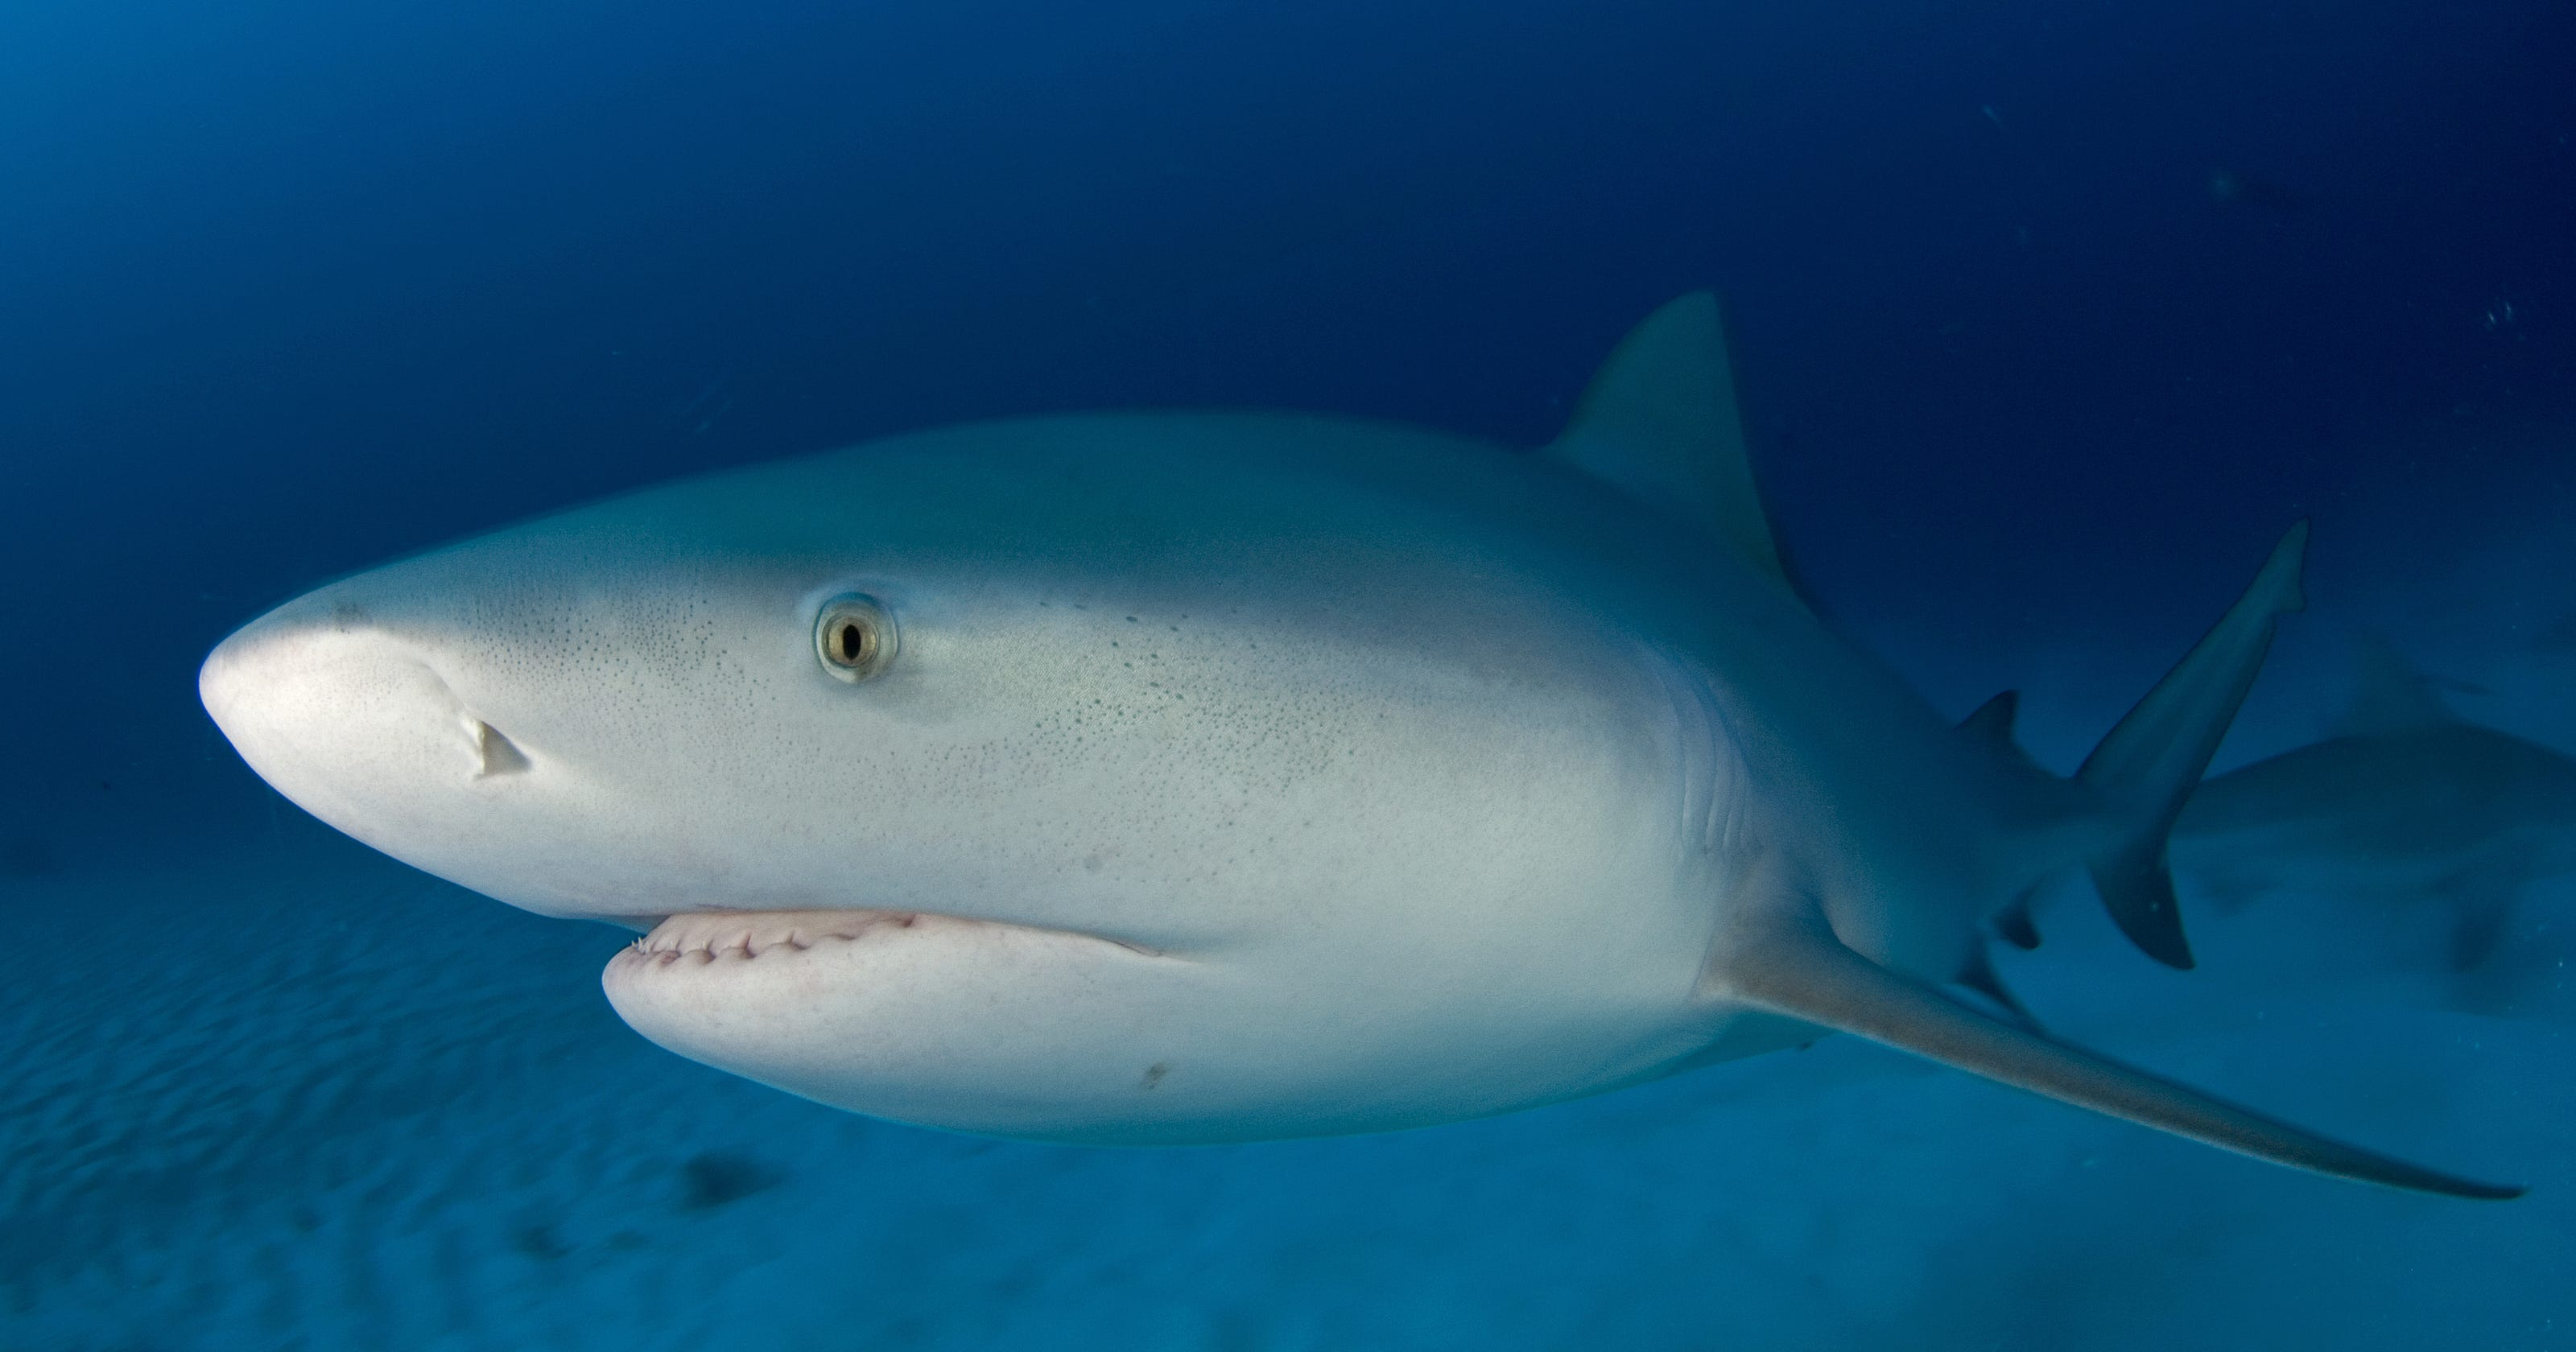 Florida shark regulations tightened to better protect sharks from